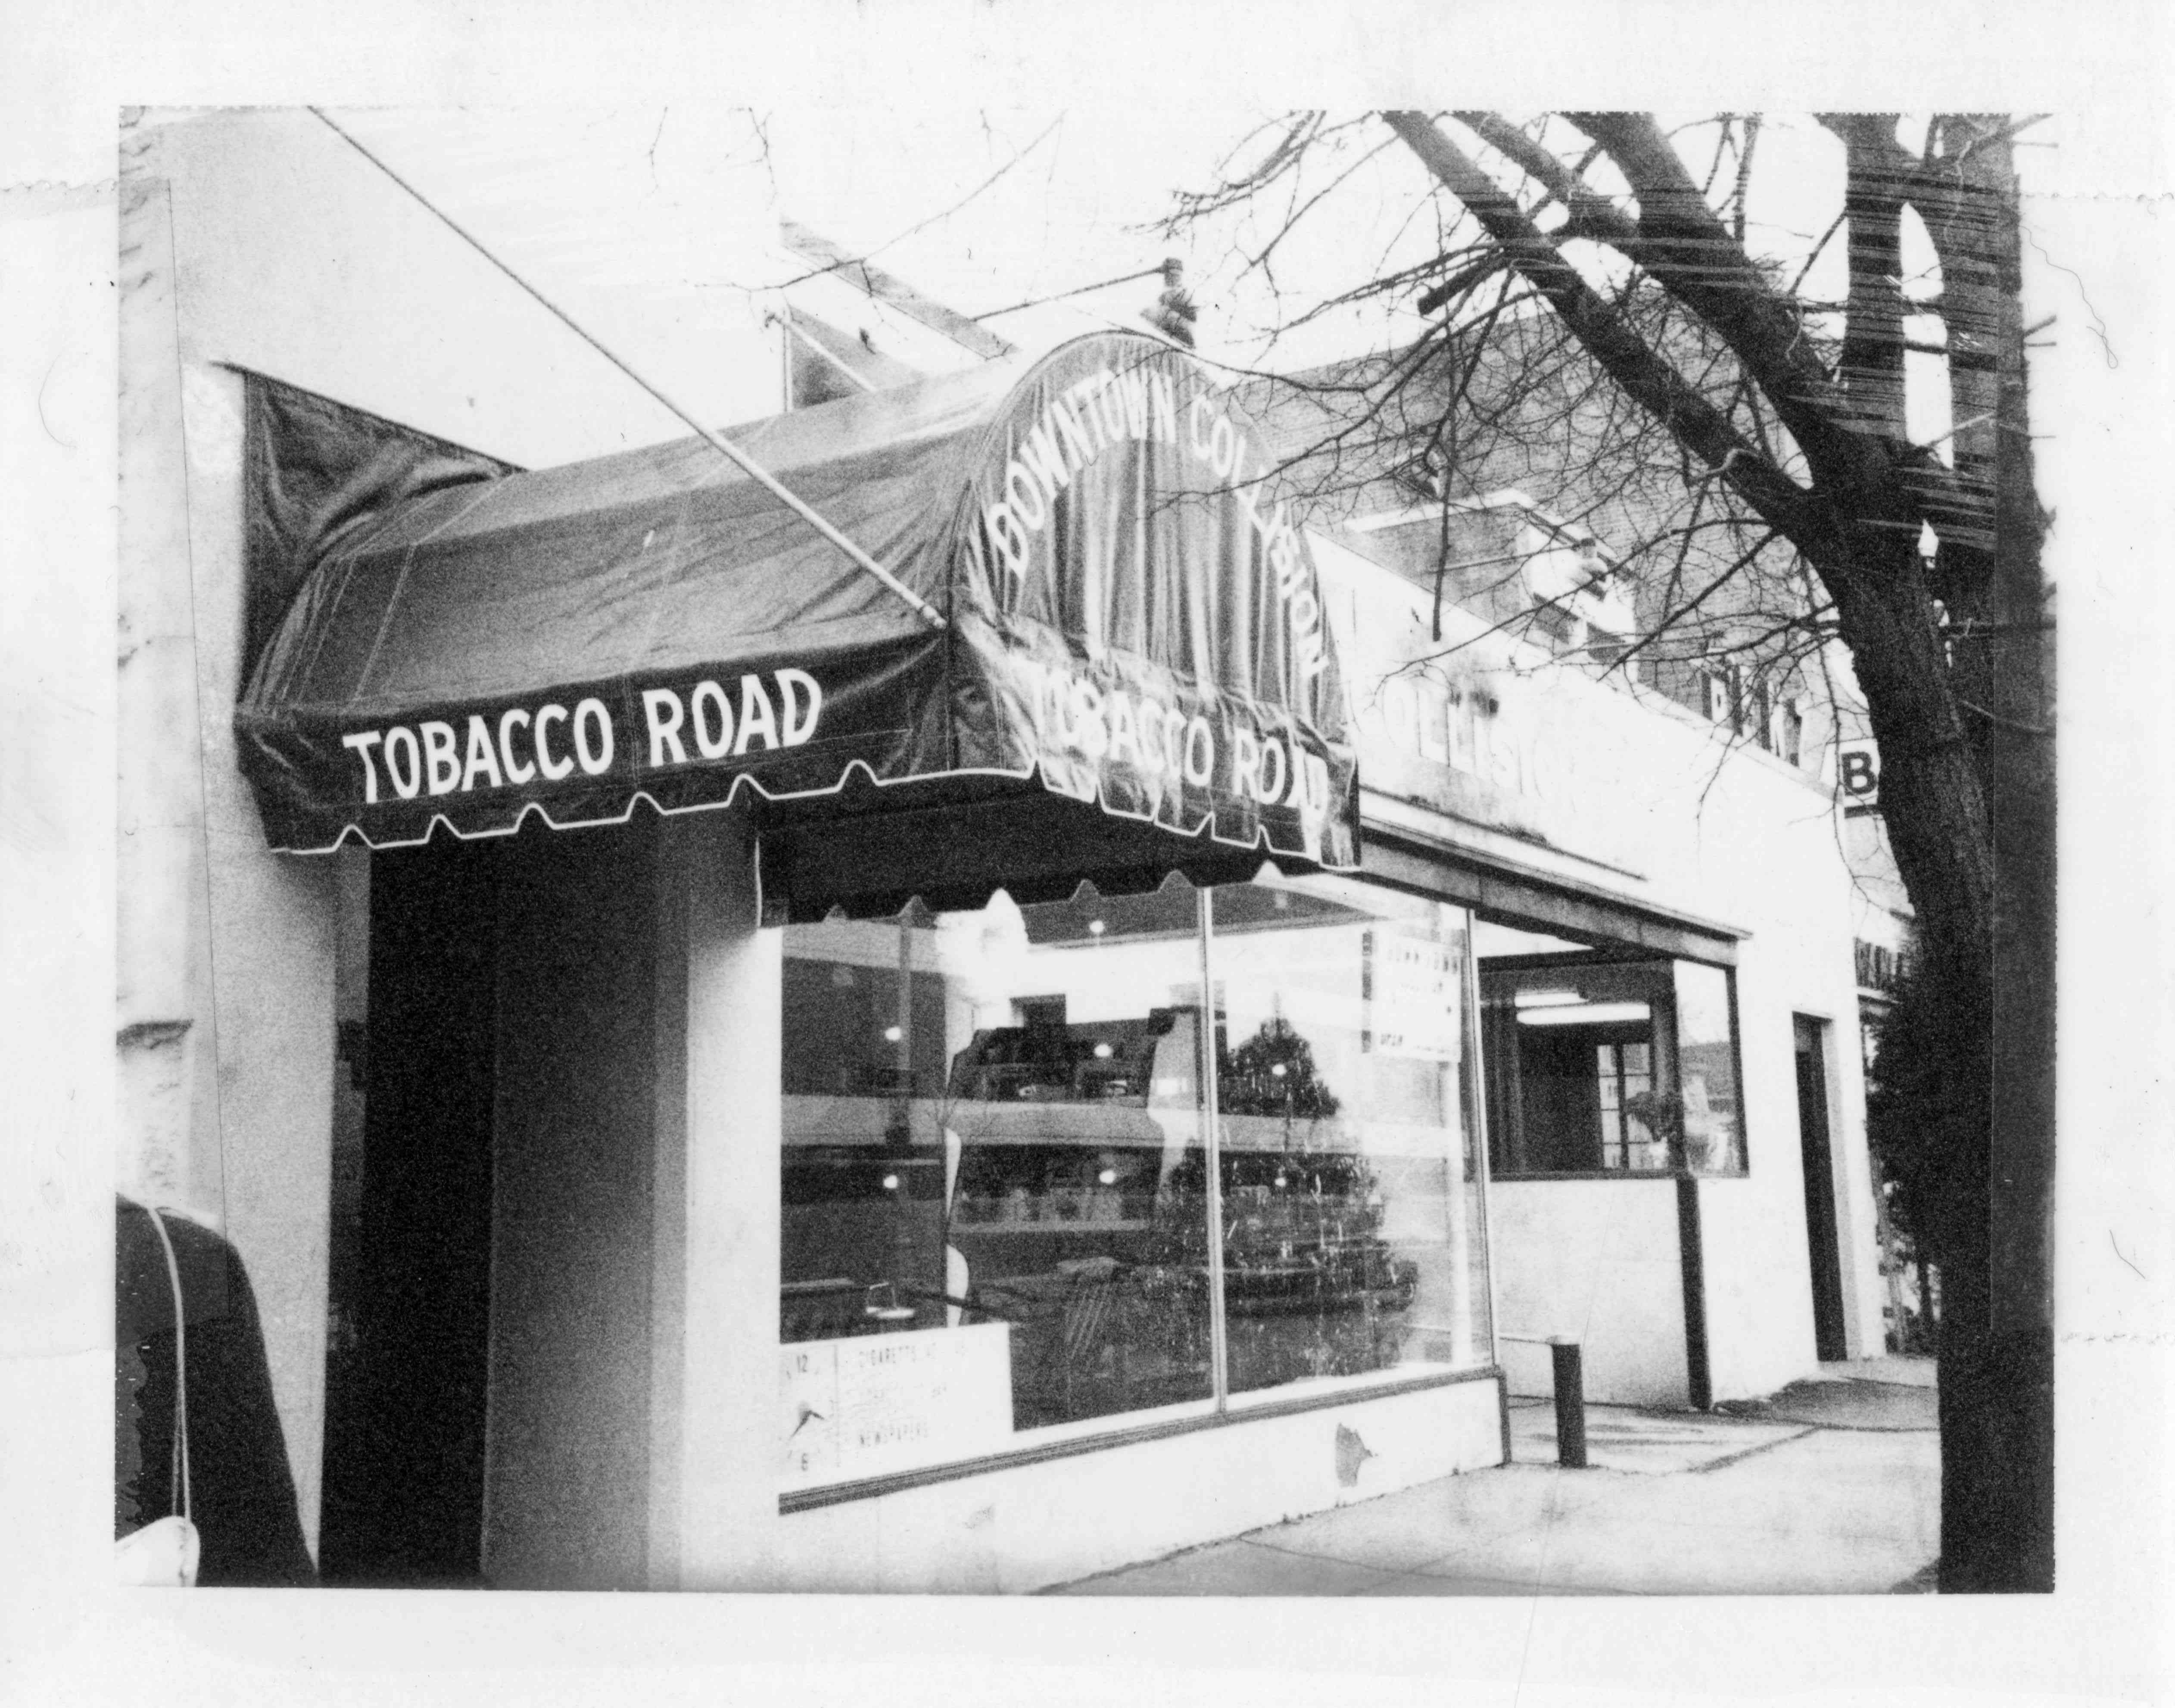 Downtown Collision Tobacco Road, 1972 image